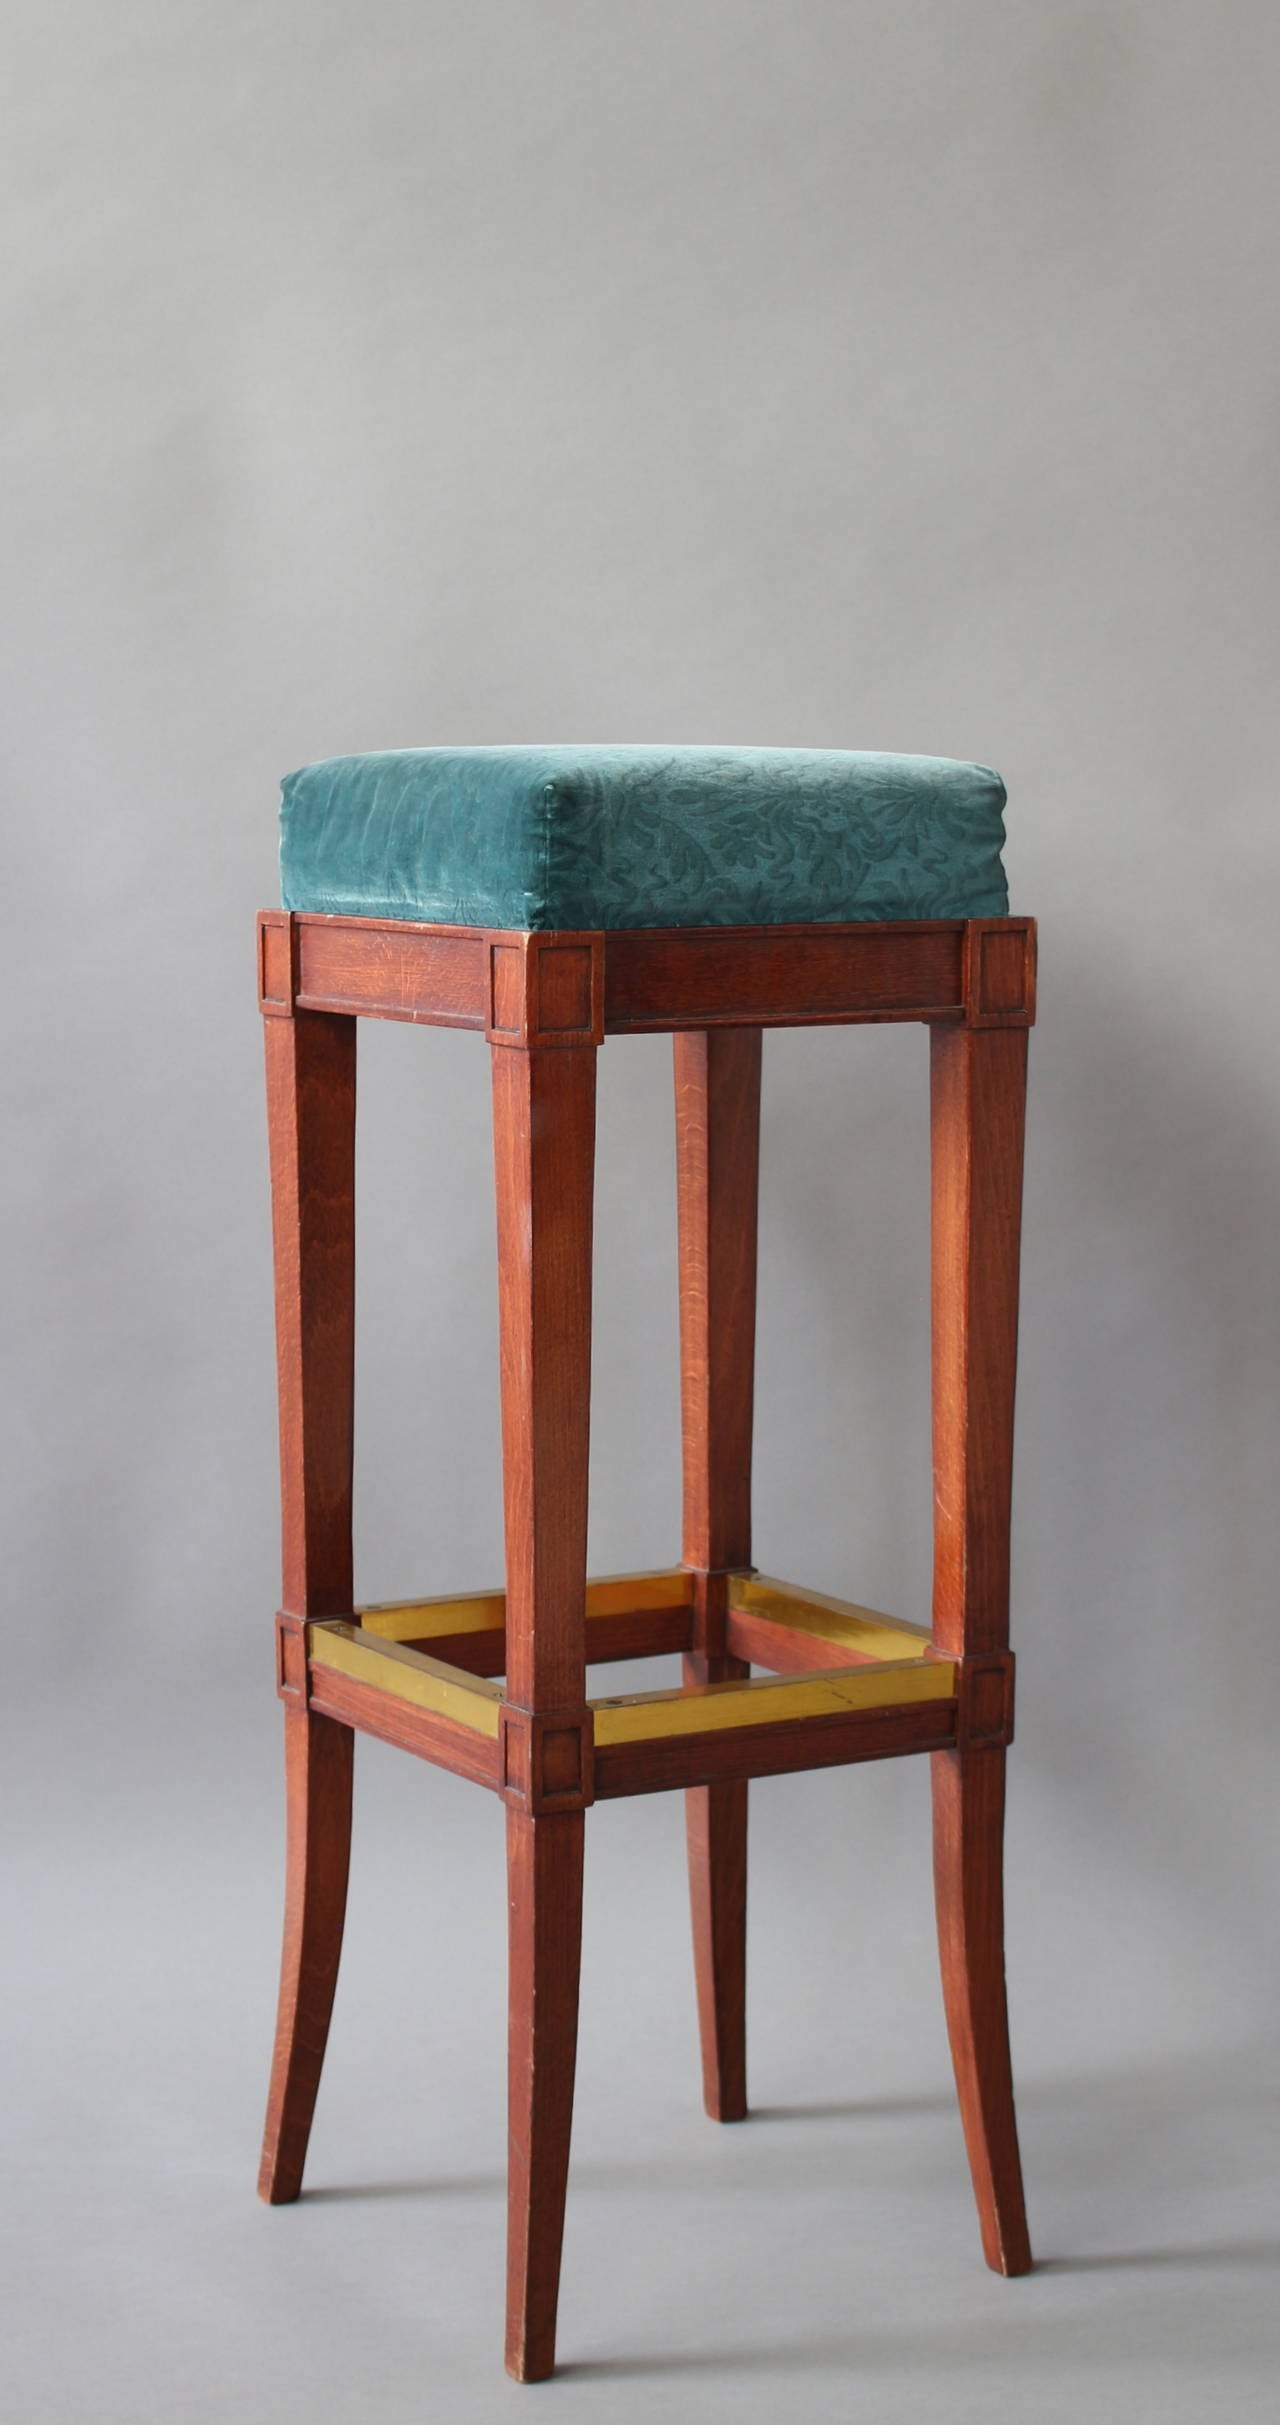 French Art Deco Bar Stool In Good Condition For Sale In Long Island City, NY